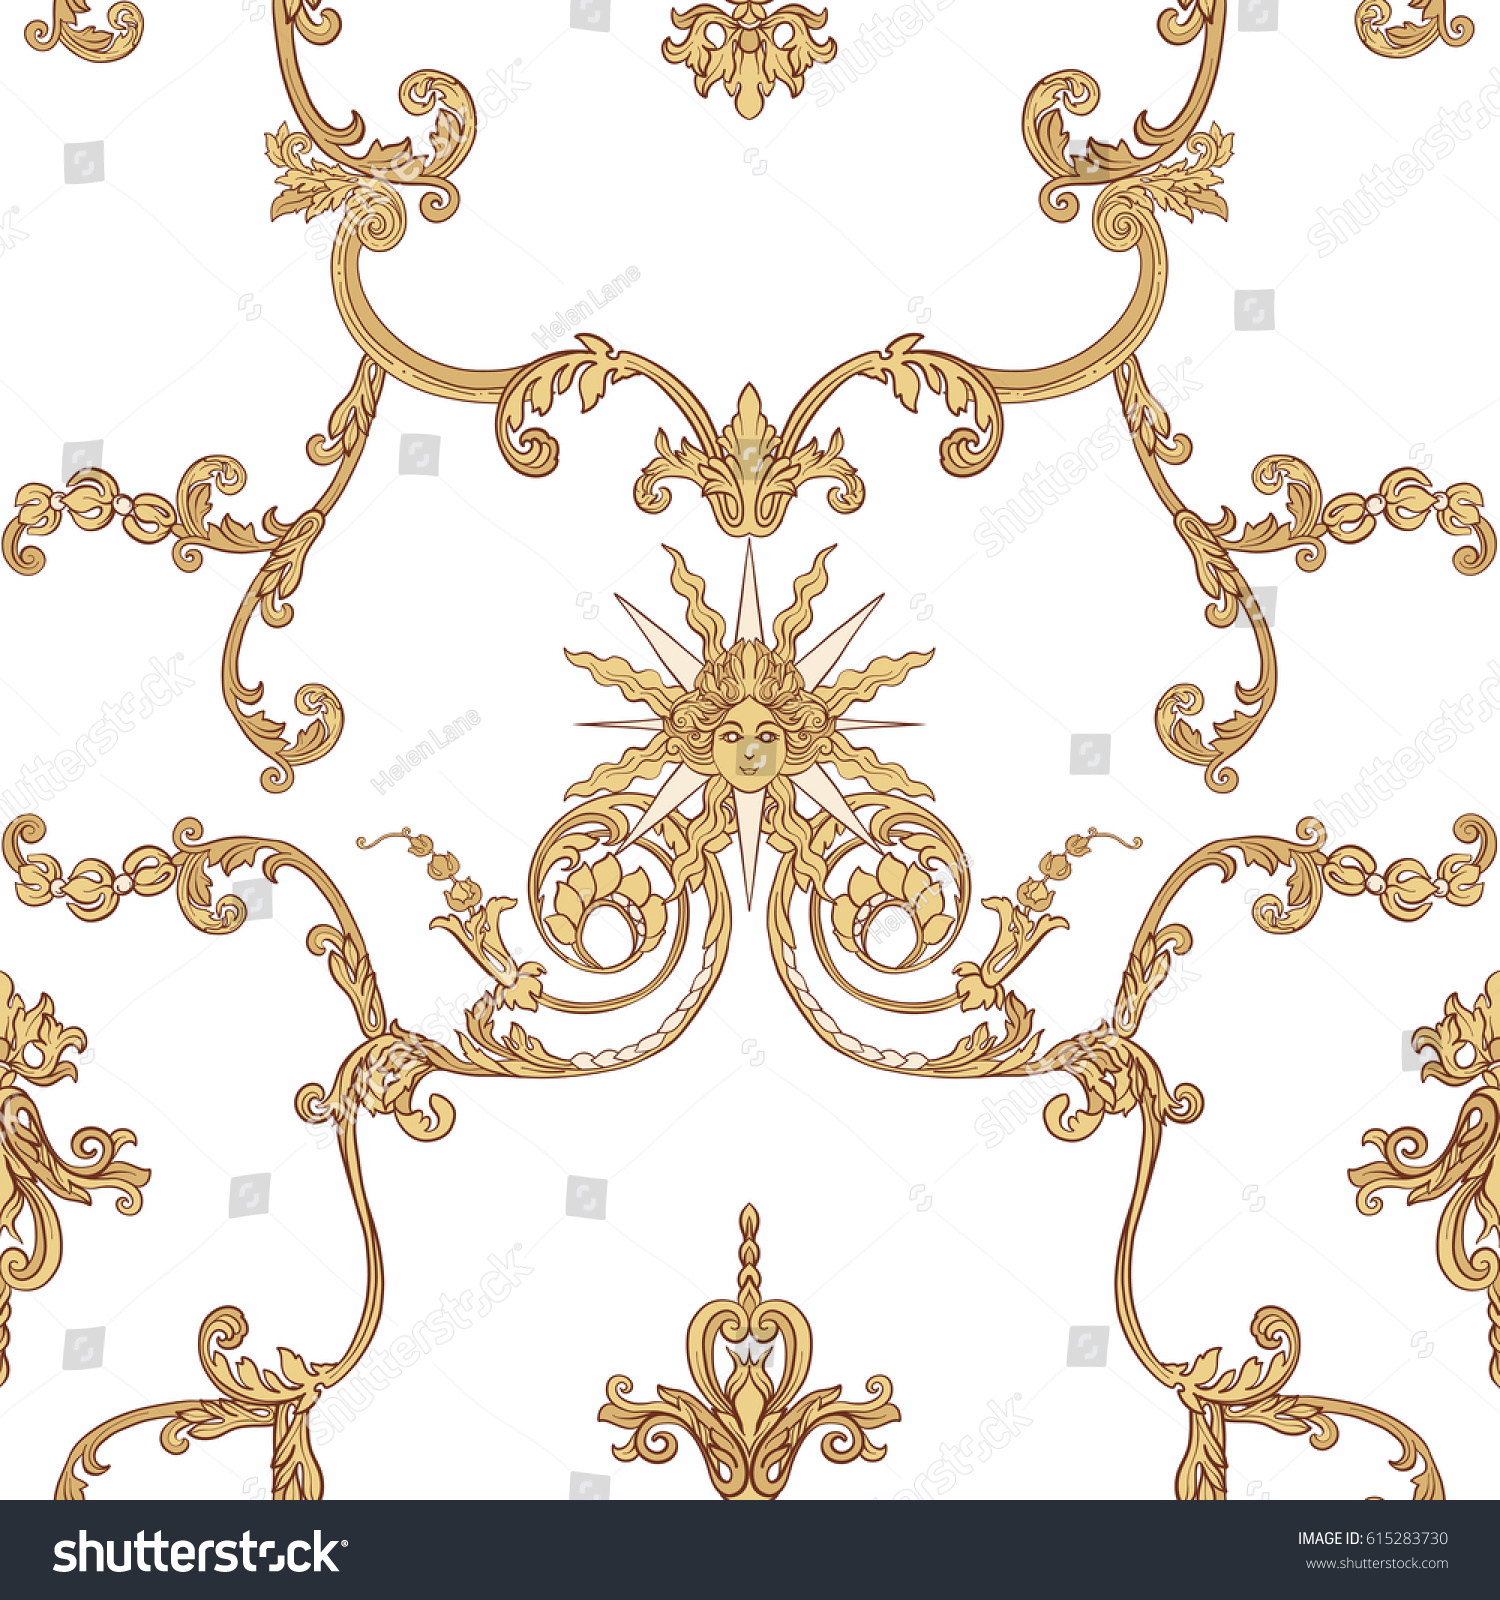 Seamless pattern richly decorated rococo style stock for Rococo decorative style